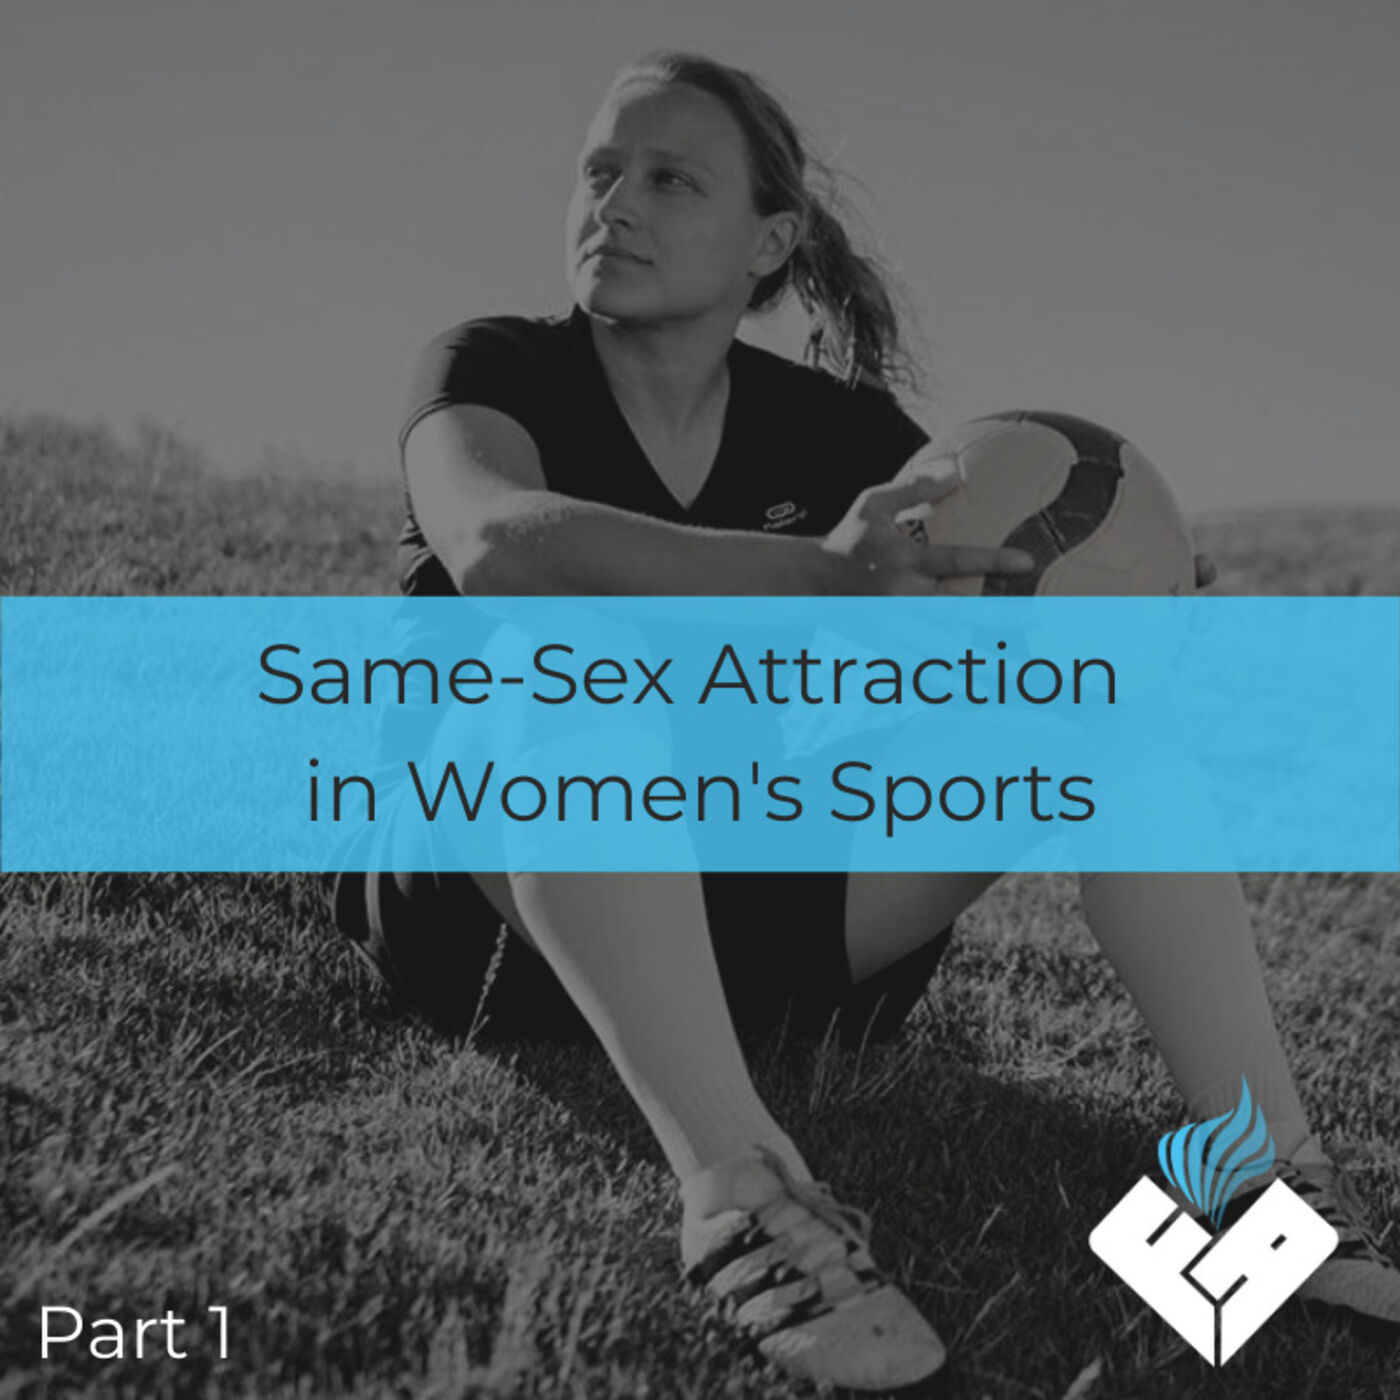 Same-Sex Attraction in Women's Sports